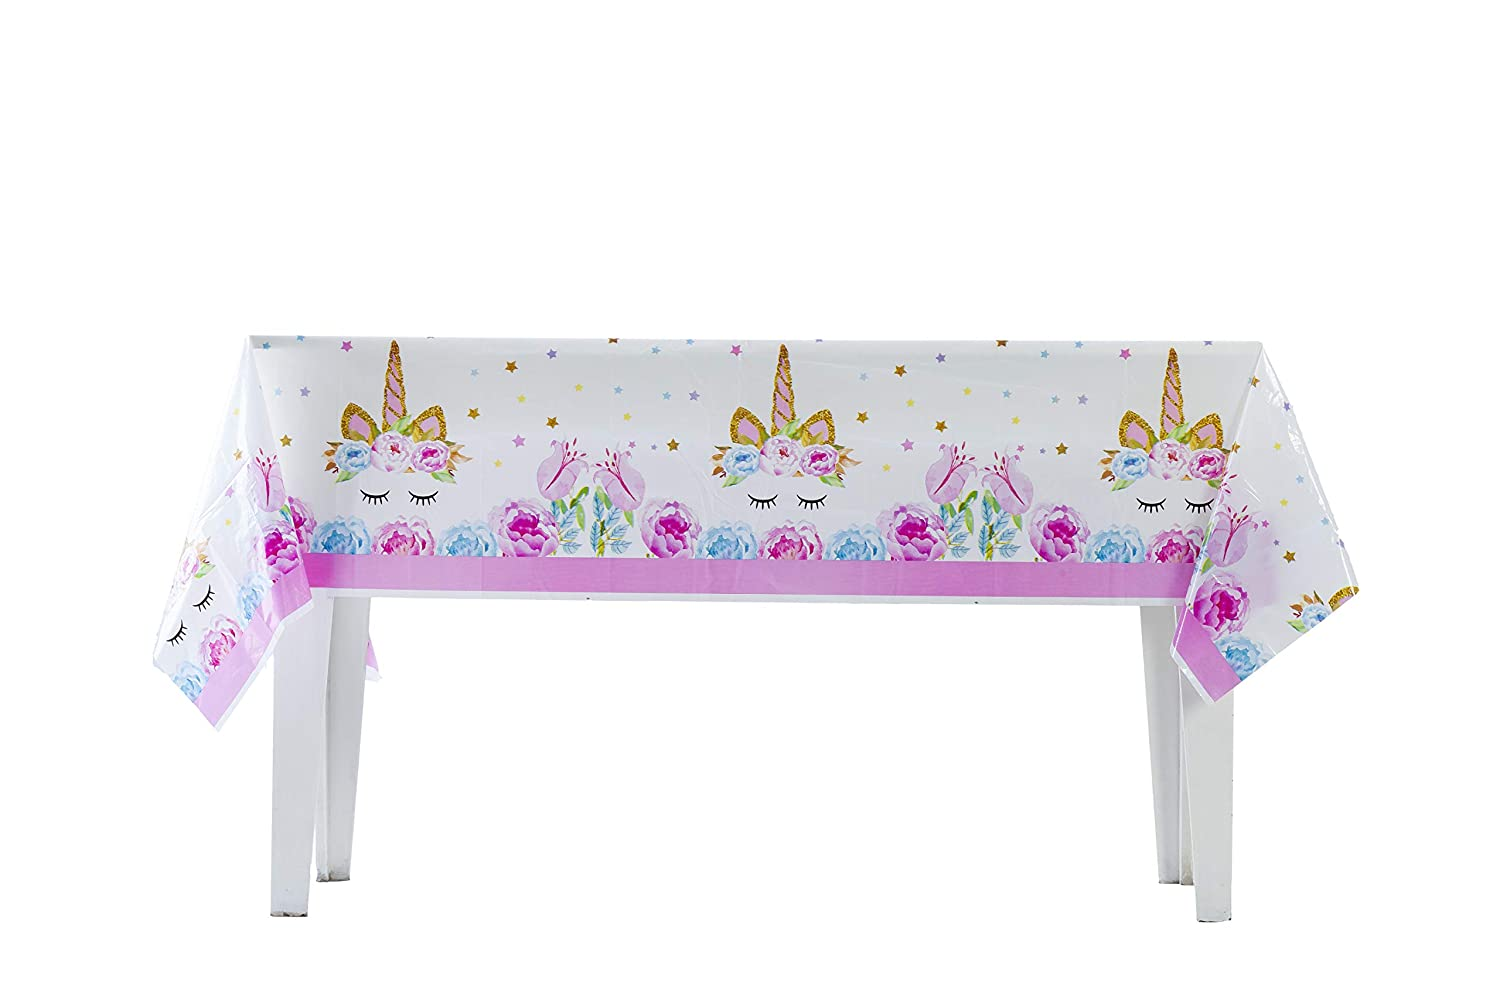 4 Pack Plastic Tablecloth Pink /& Light Blue Birthday Decorations Baby Shower Gender Reveal Unicorn Party Supplies Girl /& Boy 70 X 42 Disposable Table Cover for Rectangle Tables 4